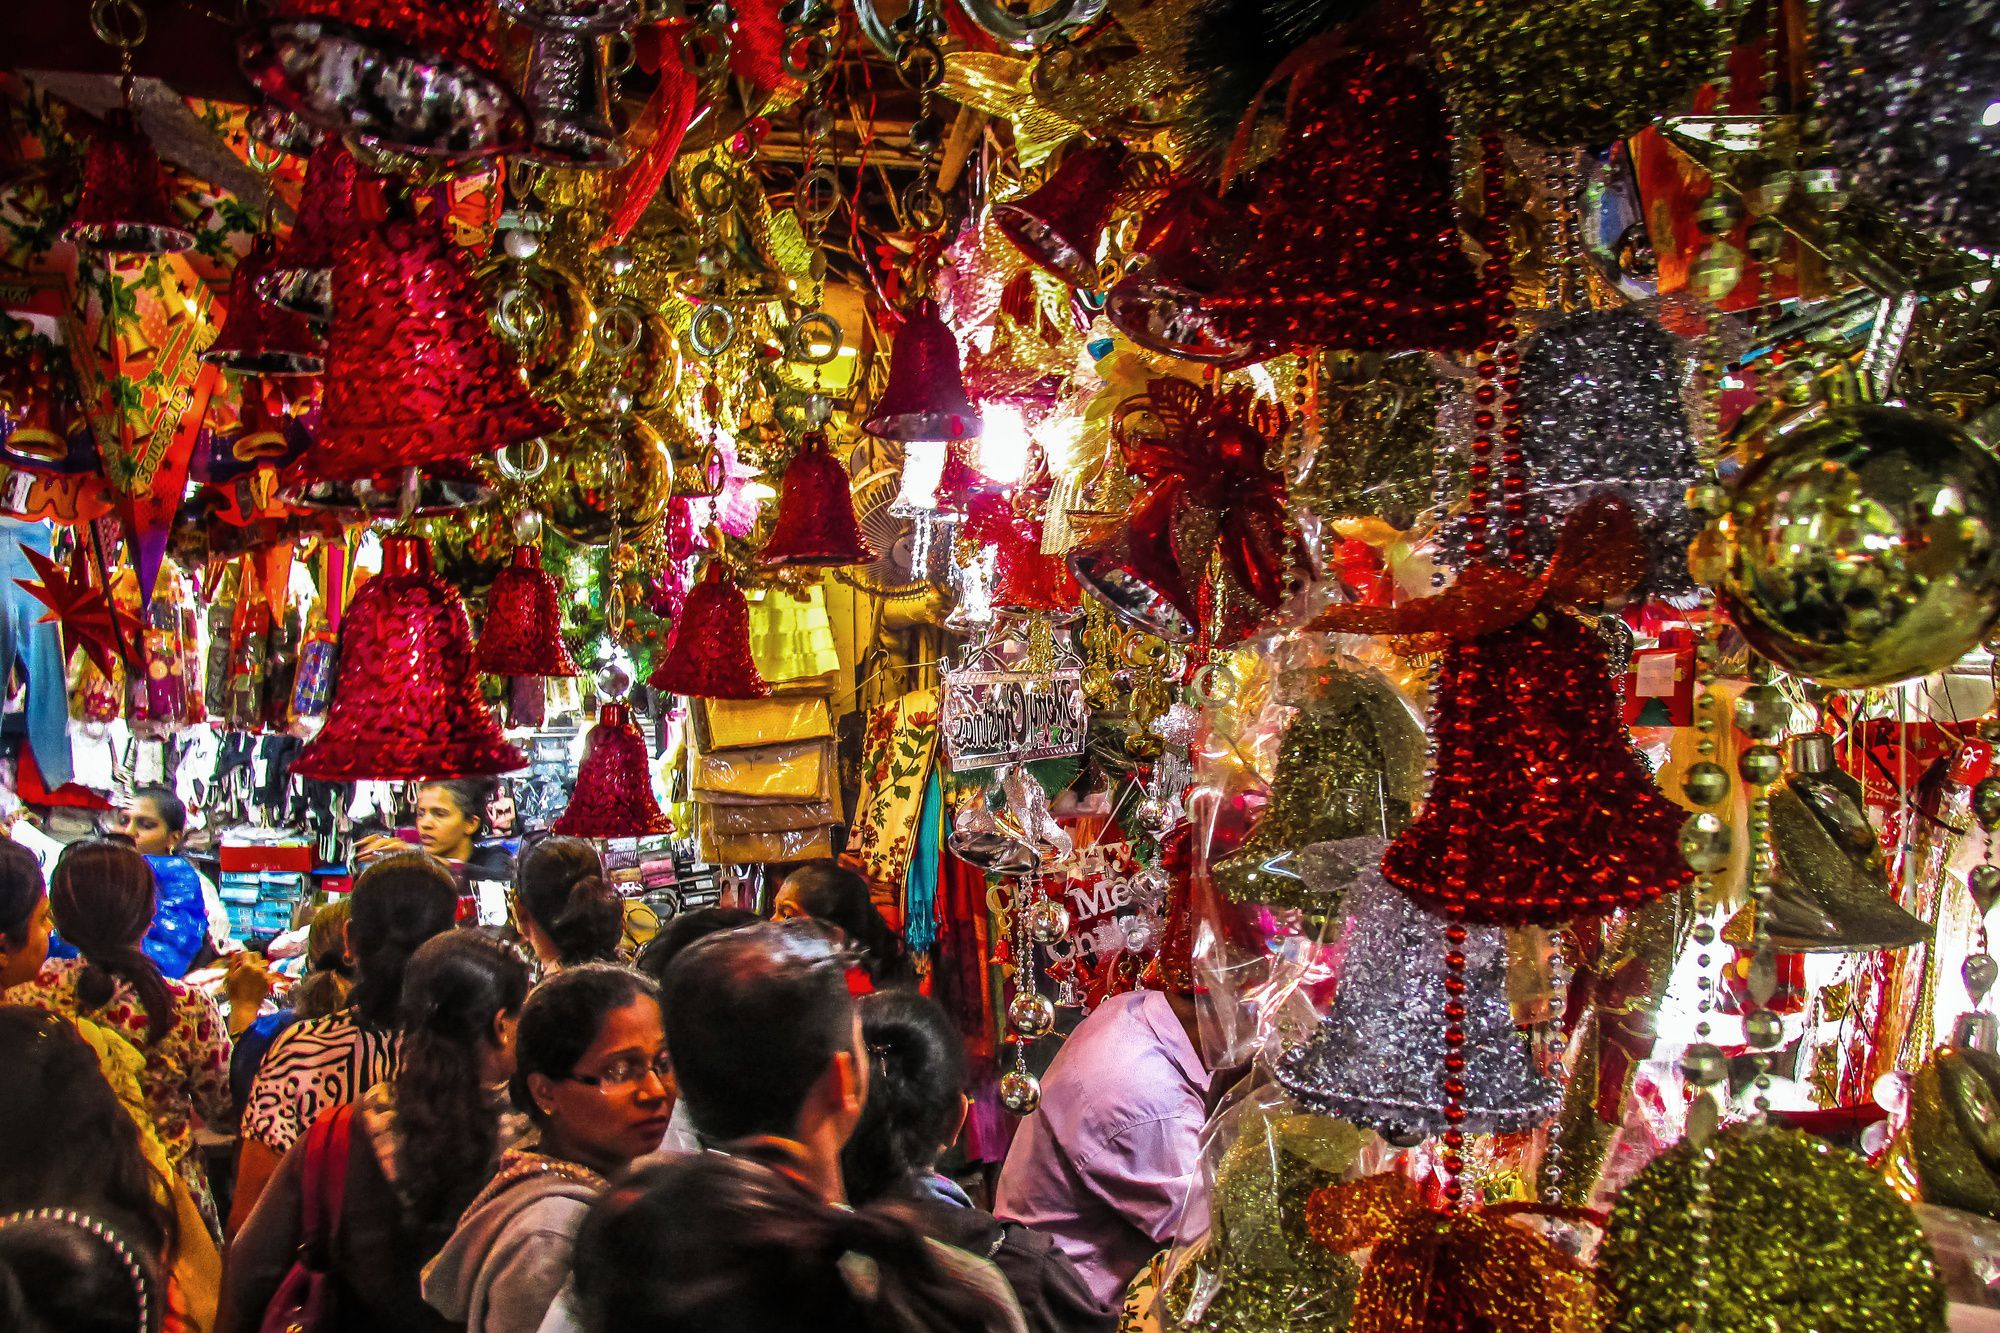 Christmas Festival In India.See Pictures Of Christmas In India In This Photo Gallery